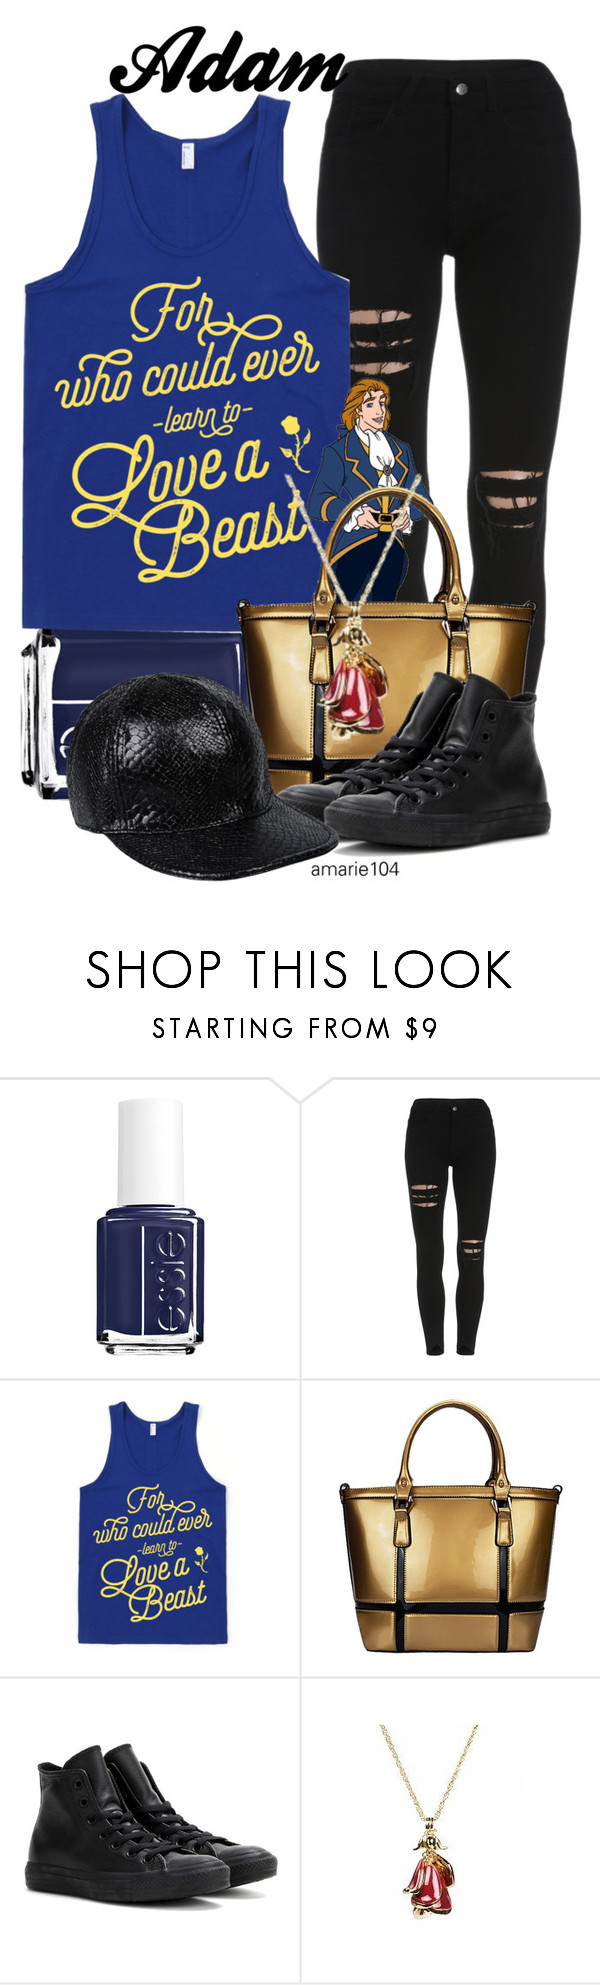 """""""Adam"""" by amarie104 ❤ liked on Polyvore featuring Essie, ADAM, Converse, Disney Couture and STELLA McCARTNEY"""